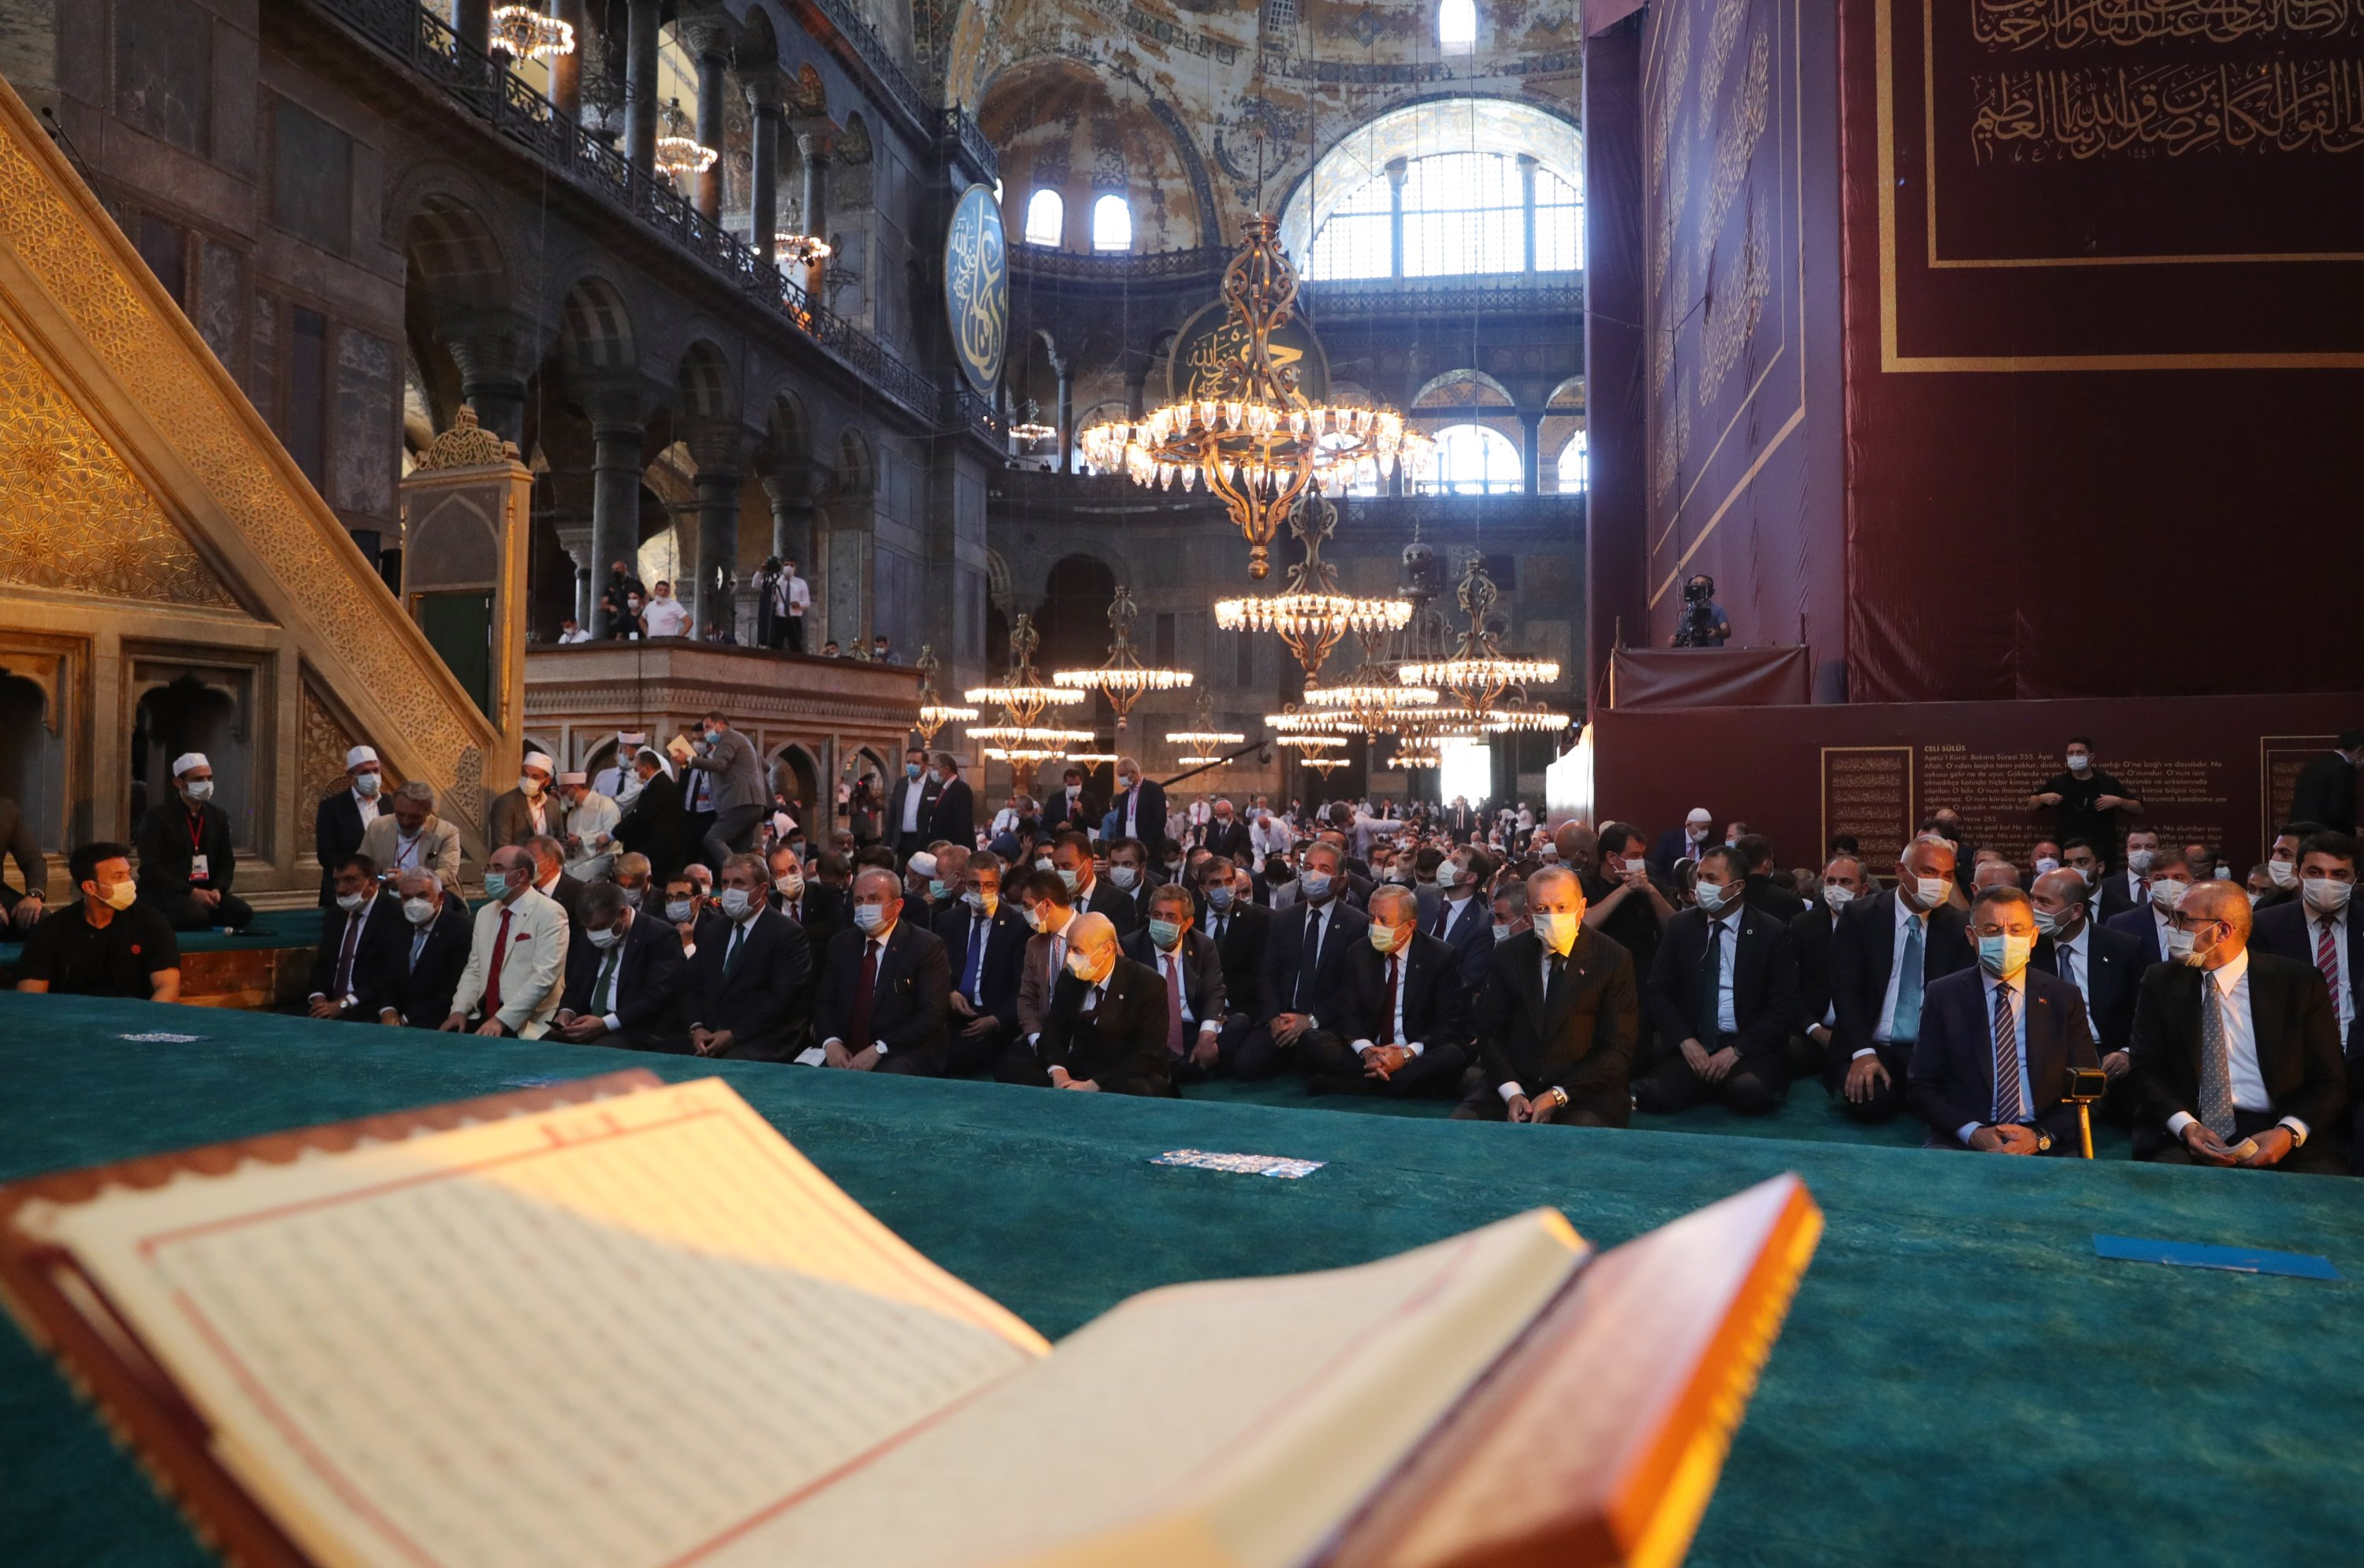 President Recep Tayyip Erdoğan attends Friday prayers at Hagia Sophia Grand Mosque, for the first time after it was once again declared a mosque after 86 years, in Istanbul, Turkey, July 24, 2020 (REUTERS Photo)